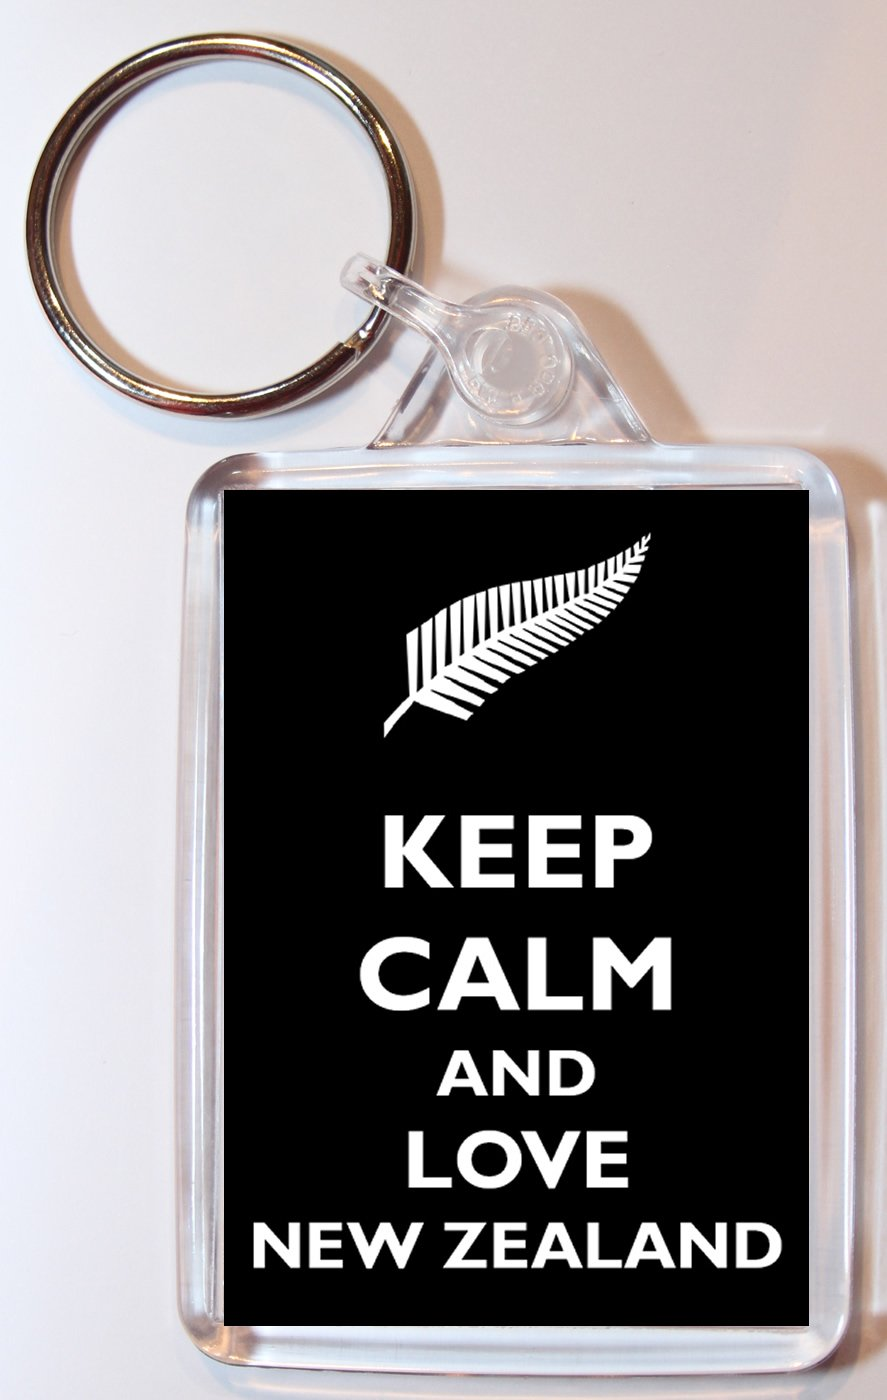 Keep Calm and Love New Zealand - Double Sided Large Keyring Key Ring Fob  Chain Name Tag Gift Present Souvenir